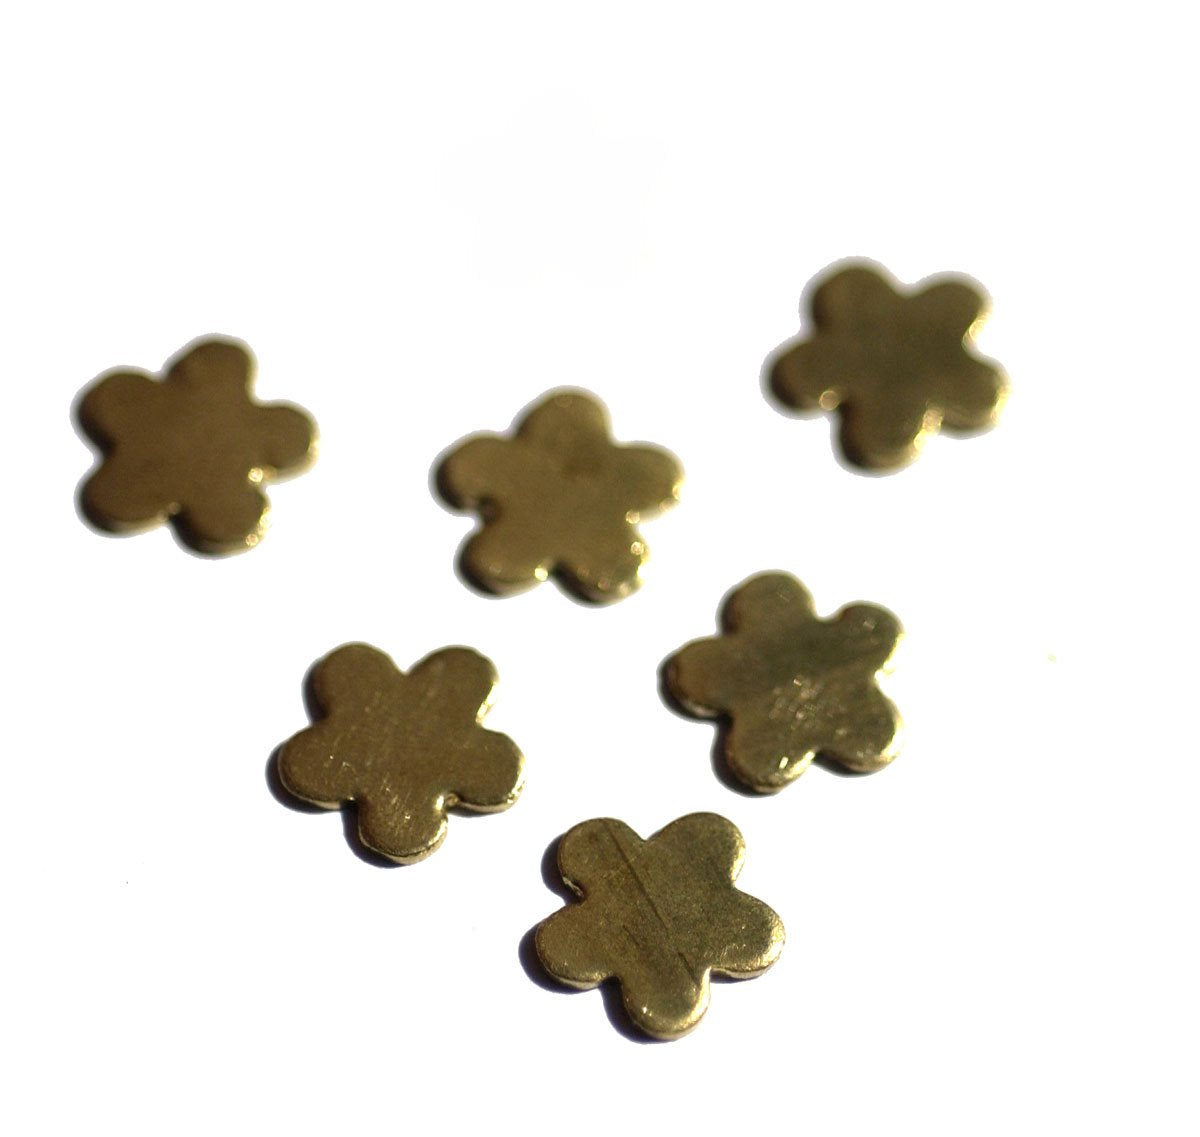 Flower Blank Metalworking Cutout Figure for Blanks Soldering Stamping Texturing  9mm, - 6 pieces